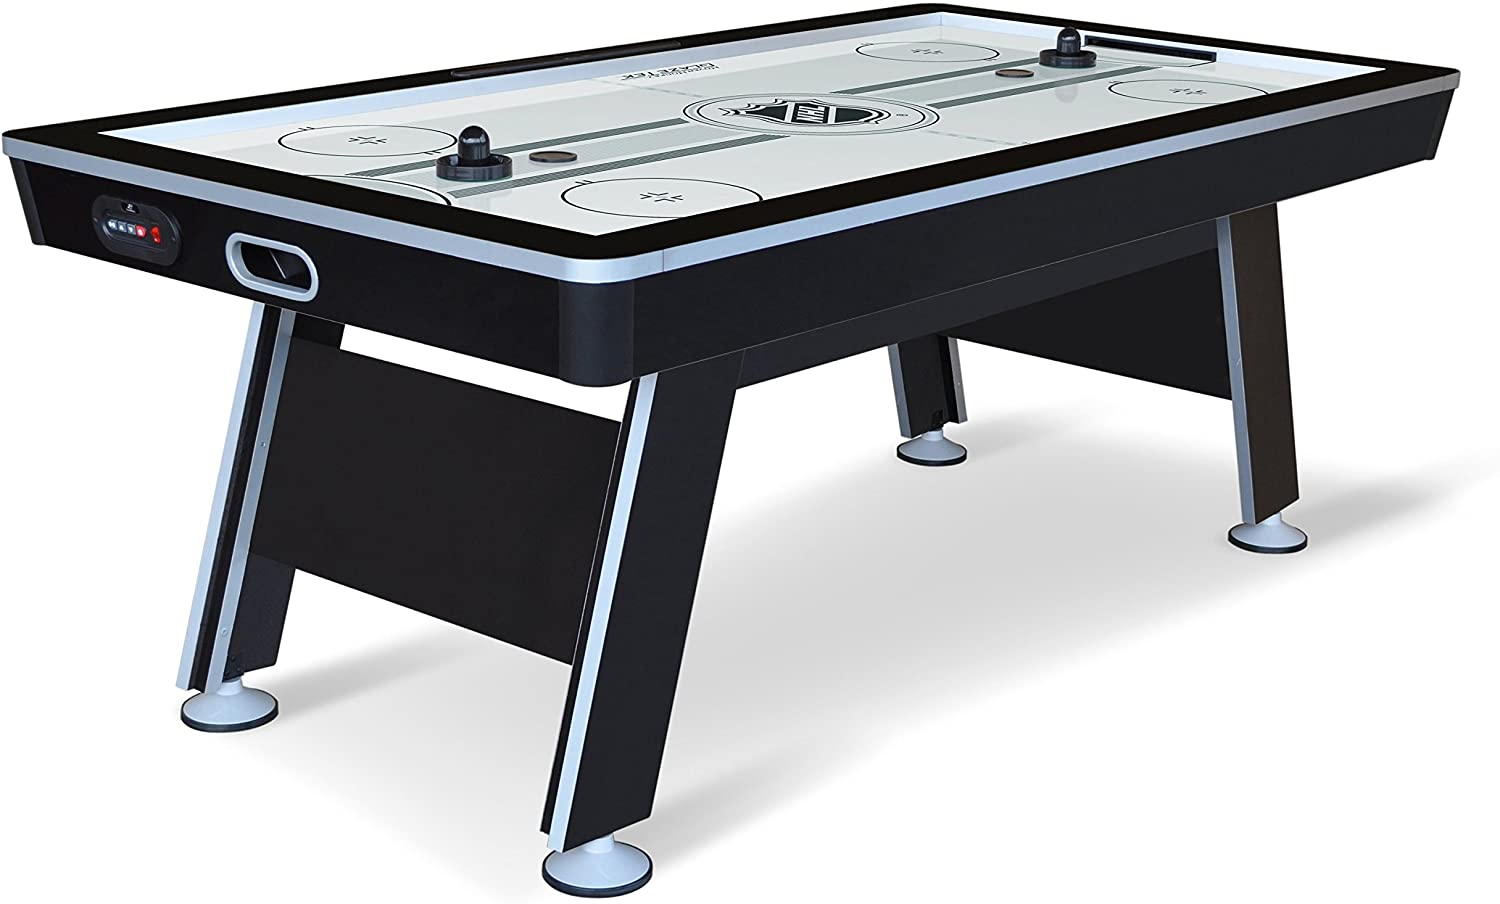 EastPoint Sports 84 Air Hockey Table Specs